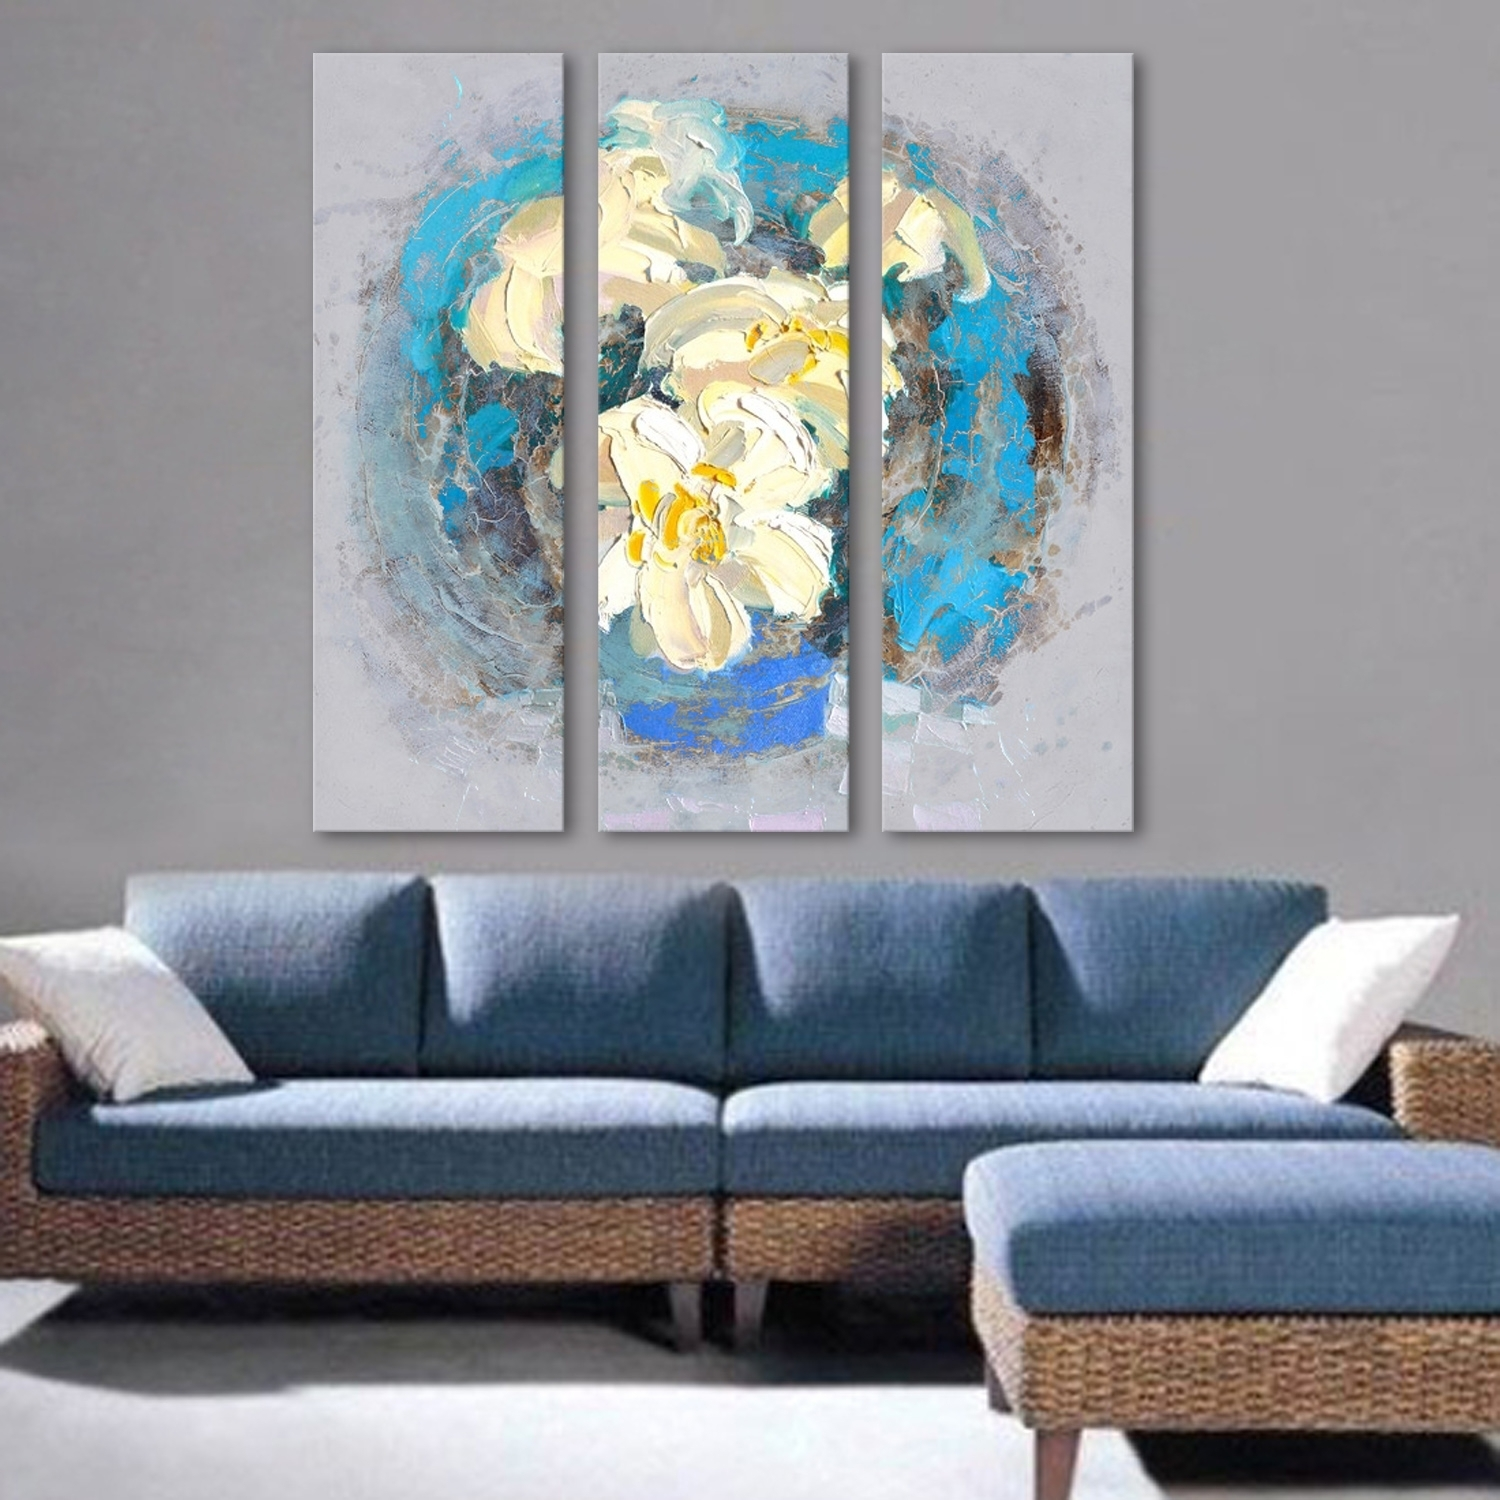 Oil Painting, Oil Paintings For Sale Online, Canvas Art Supplier For Most Up To Date Abstract Flower Wall Art (View 4 of 20)